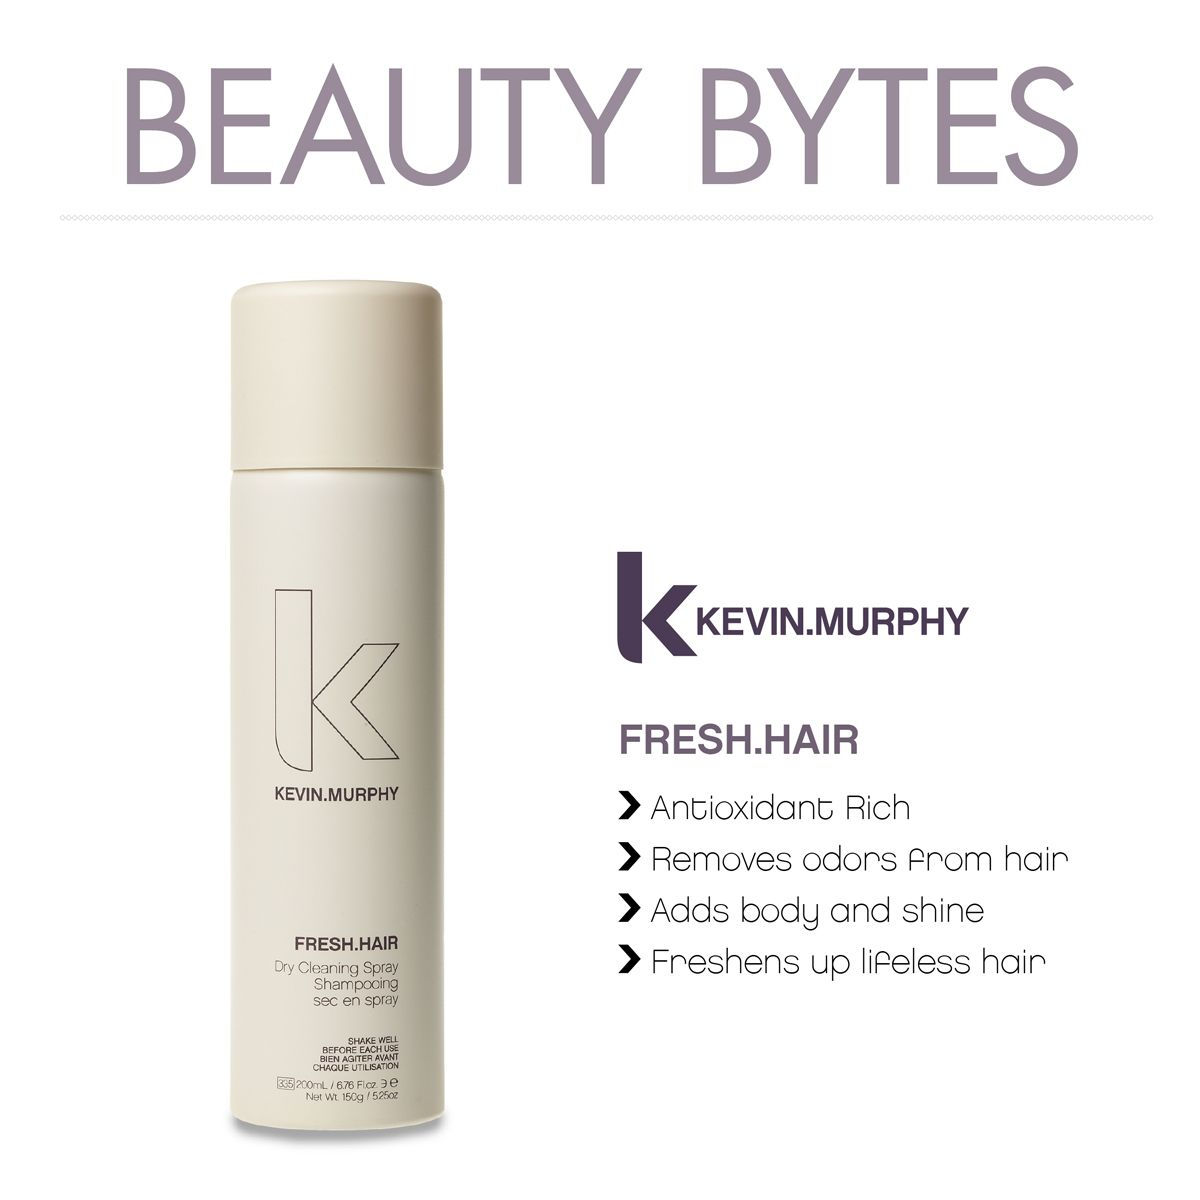 Did you know kevin murphy fresh hair is like a dry for A fresh start beauty salon